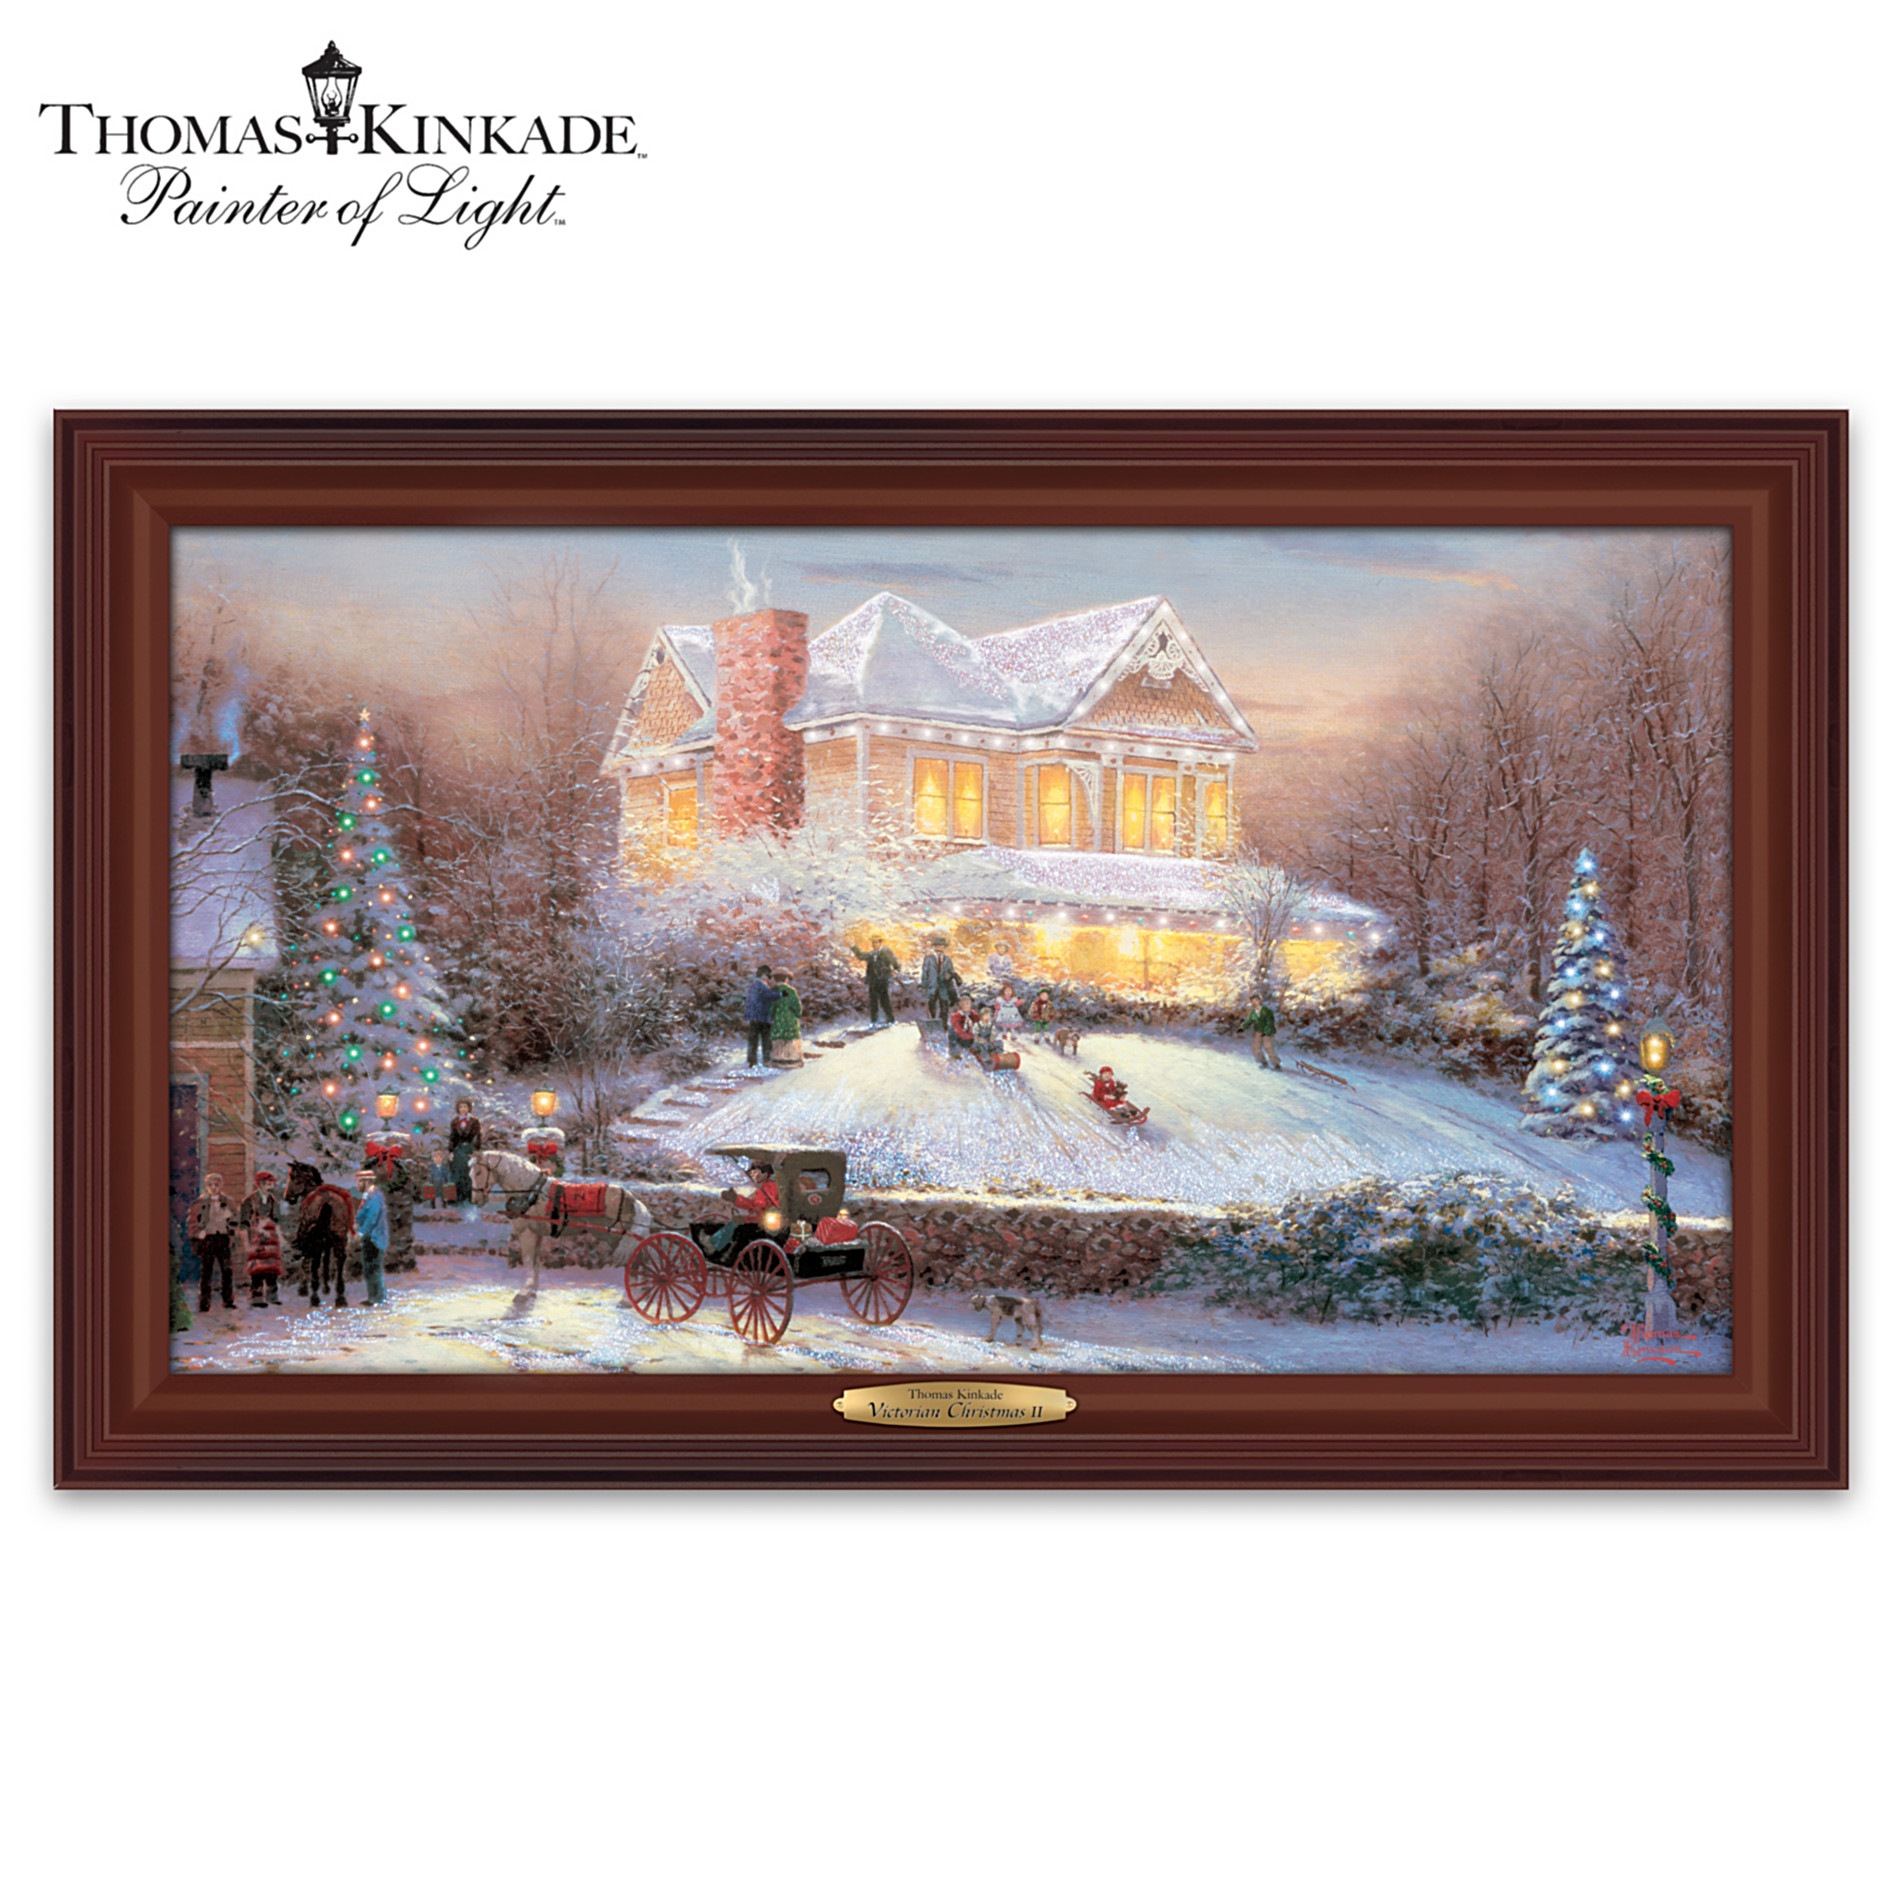 The Bradford Exchange Wall Decor: Thomas Kinkade Victorian Christmas II Wall Decor at Sears.com